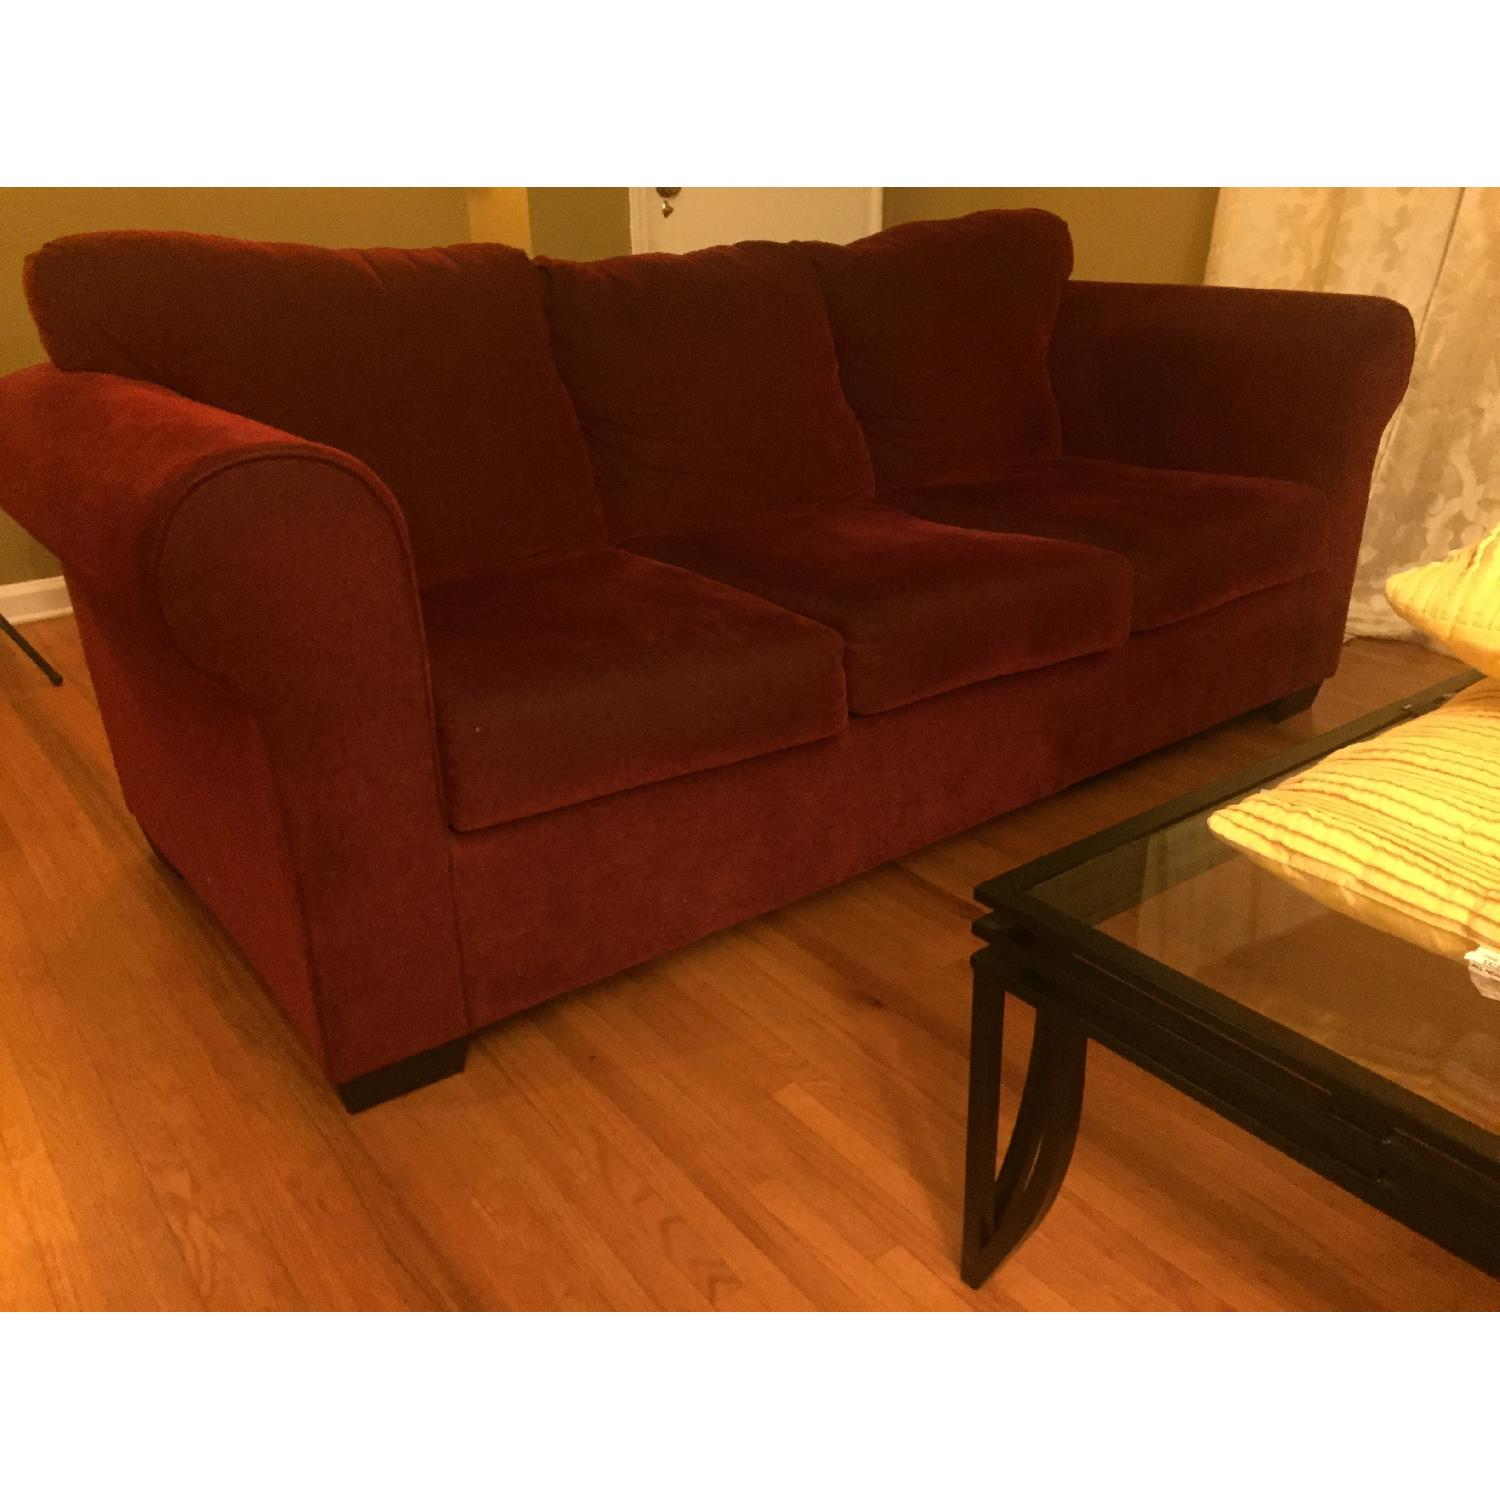 Piedmont Furniture Lydia Deep Red 3 Seater Sofa Aptdeco - Lydia 2 Seater Sofa